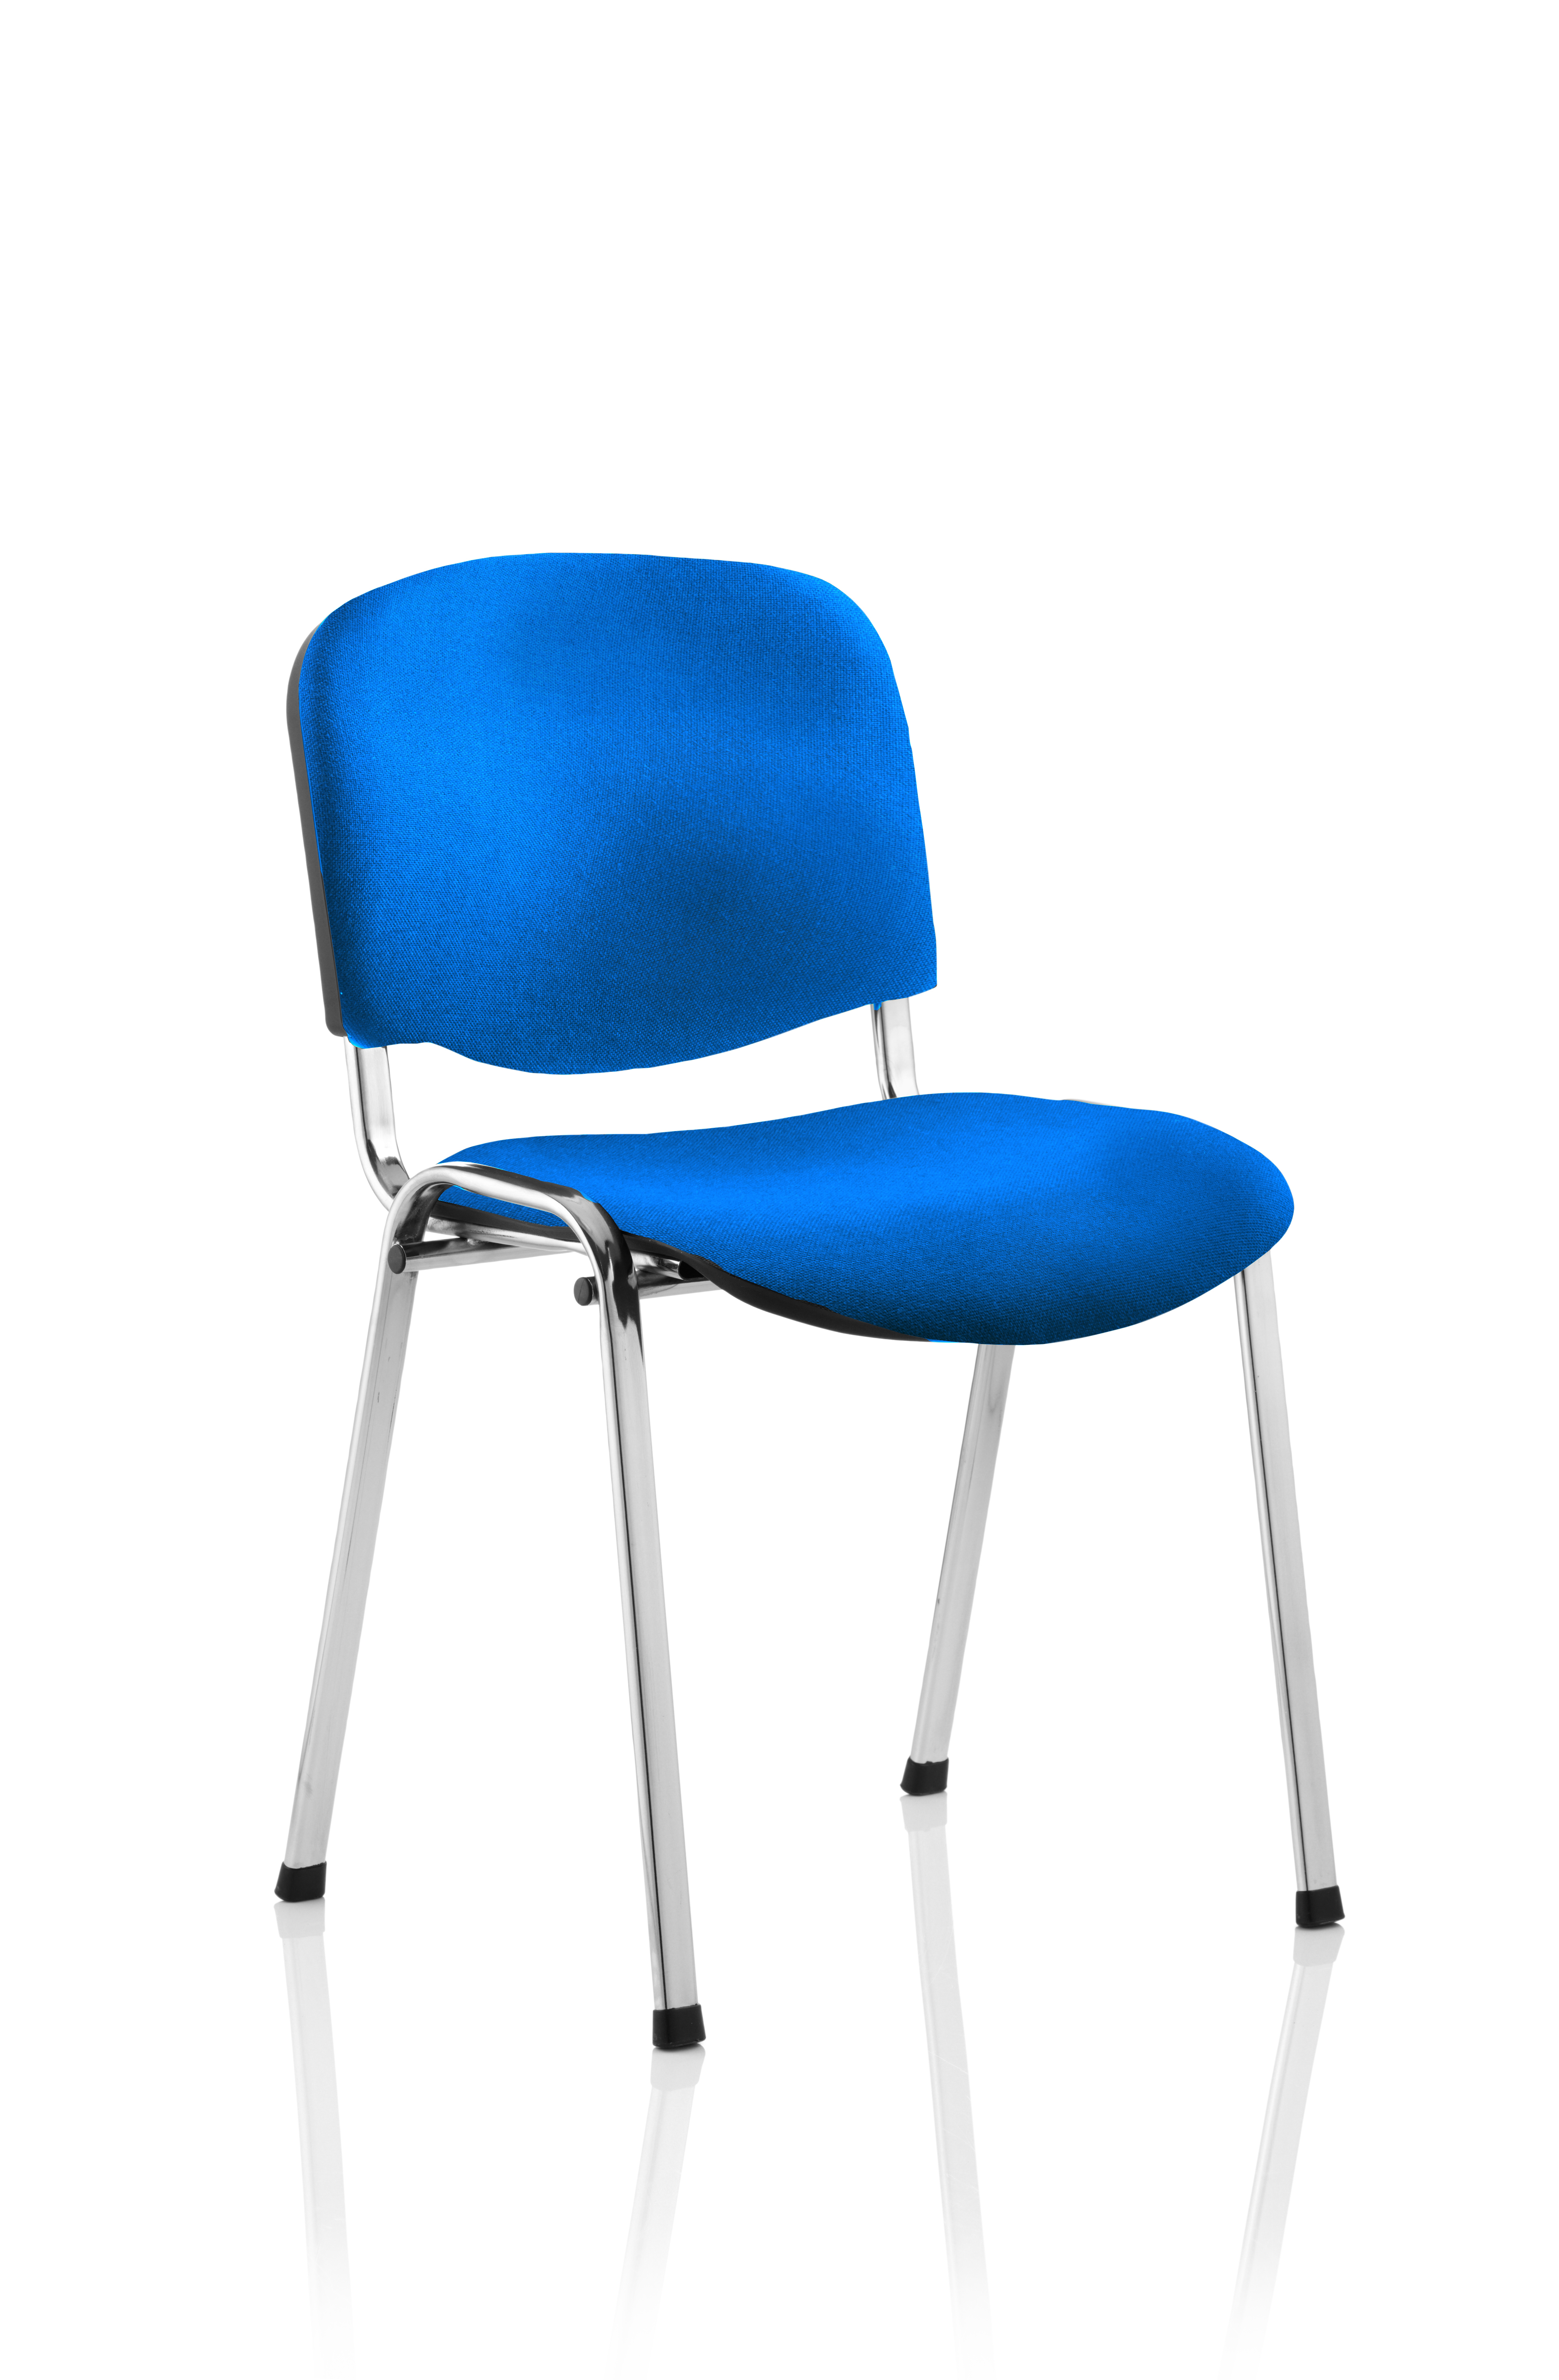 Stacking Chairs ISO Stacking Chair Blue Fabric Chrome Frame BR000068